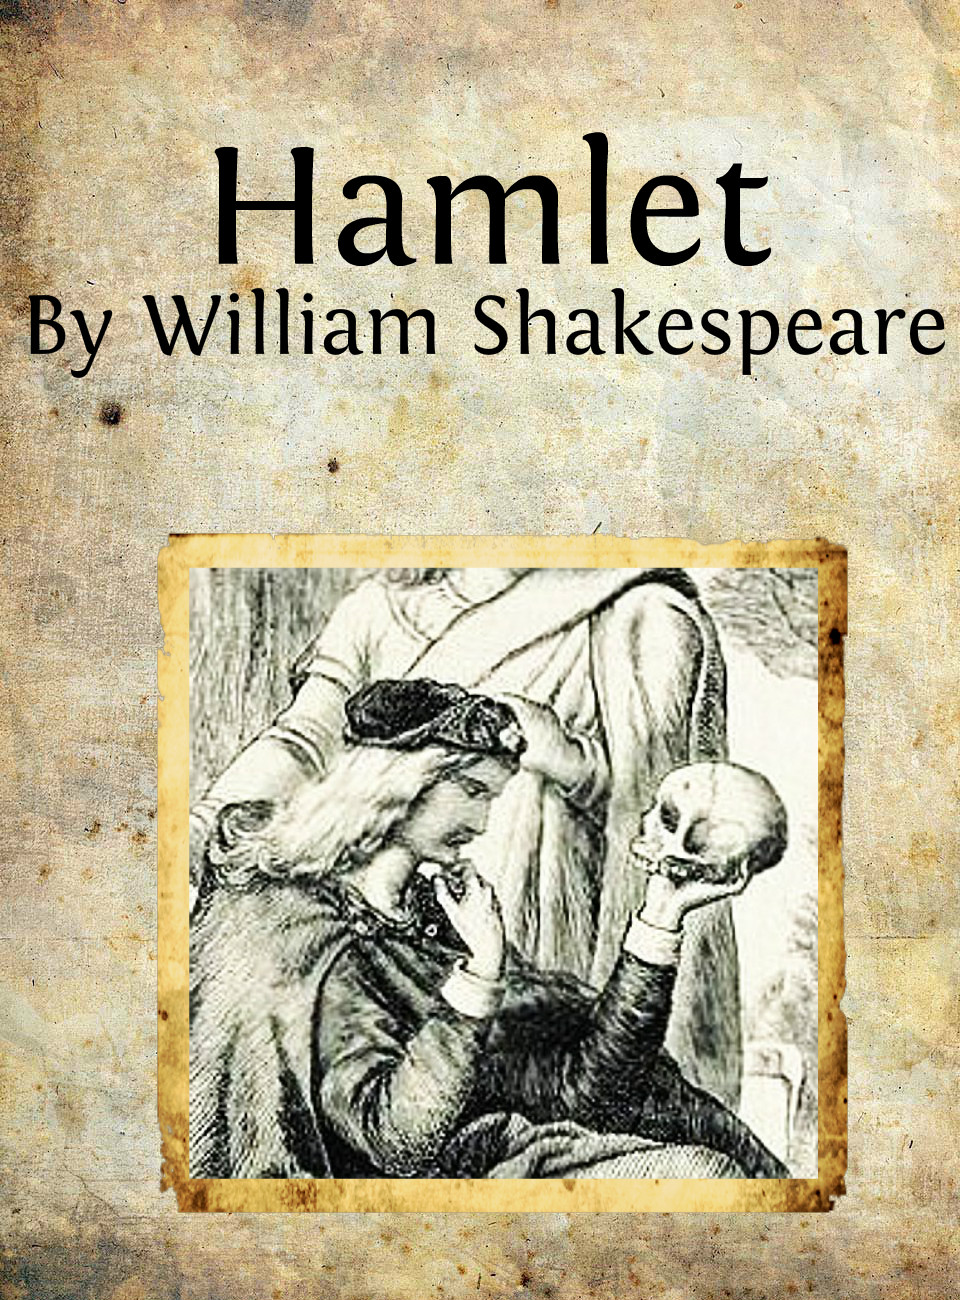 hamlet Top 10 Best Shakespearean Plays